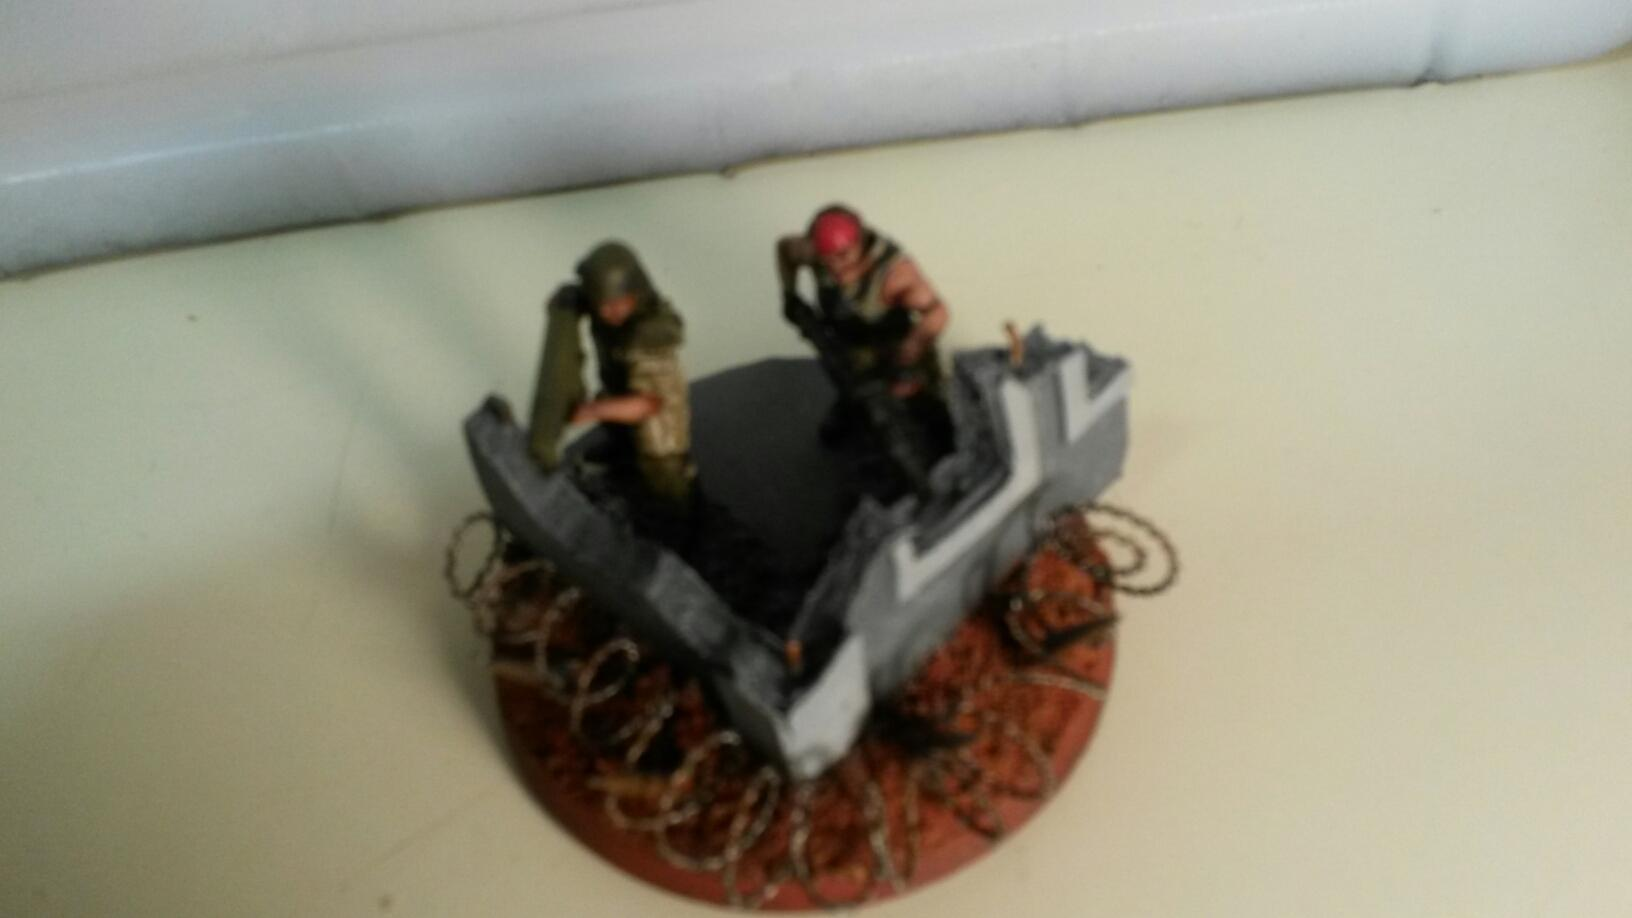 Astra, Colonial, Desert, Forge World, Guard, Imperial, Industrial, Kill, Mad, Manufactorum, Mars, Militarum, Red, Robot, Space Marines, Team